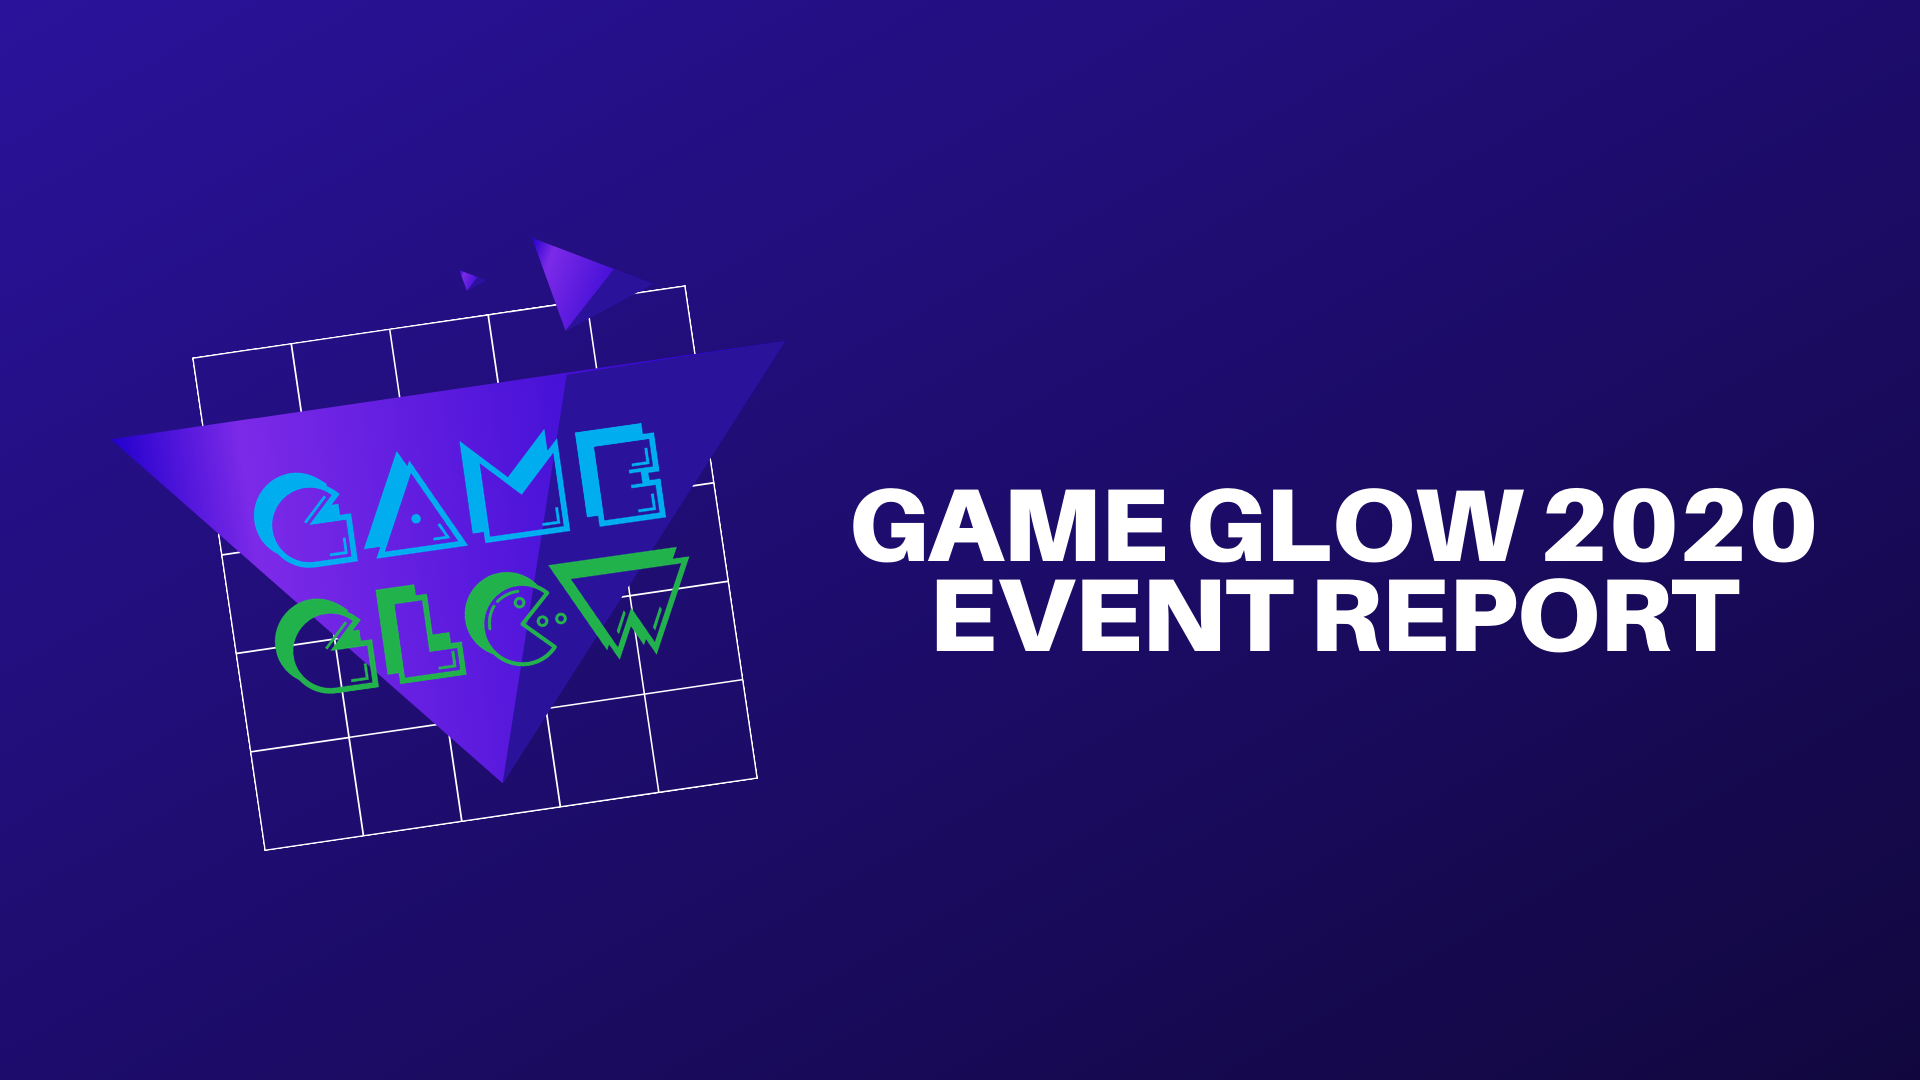 Game Glow 2020 – Event Report & Marketing